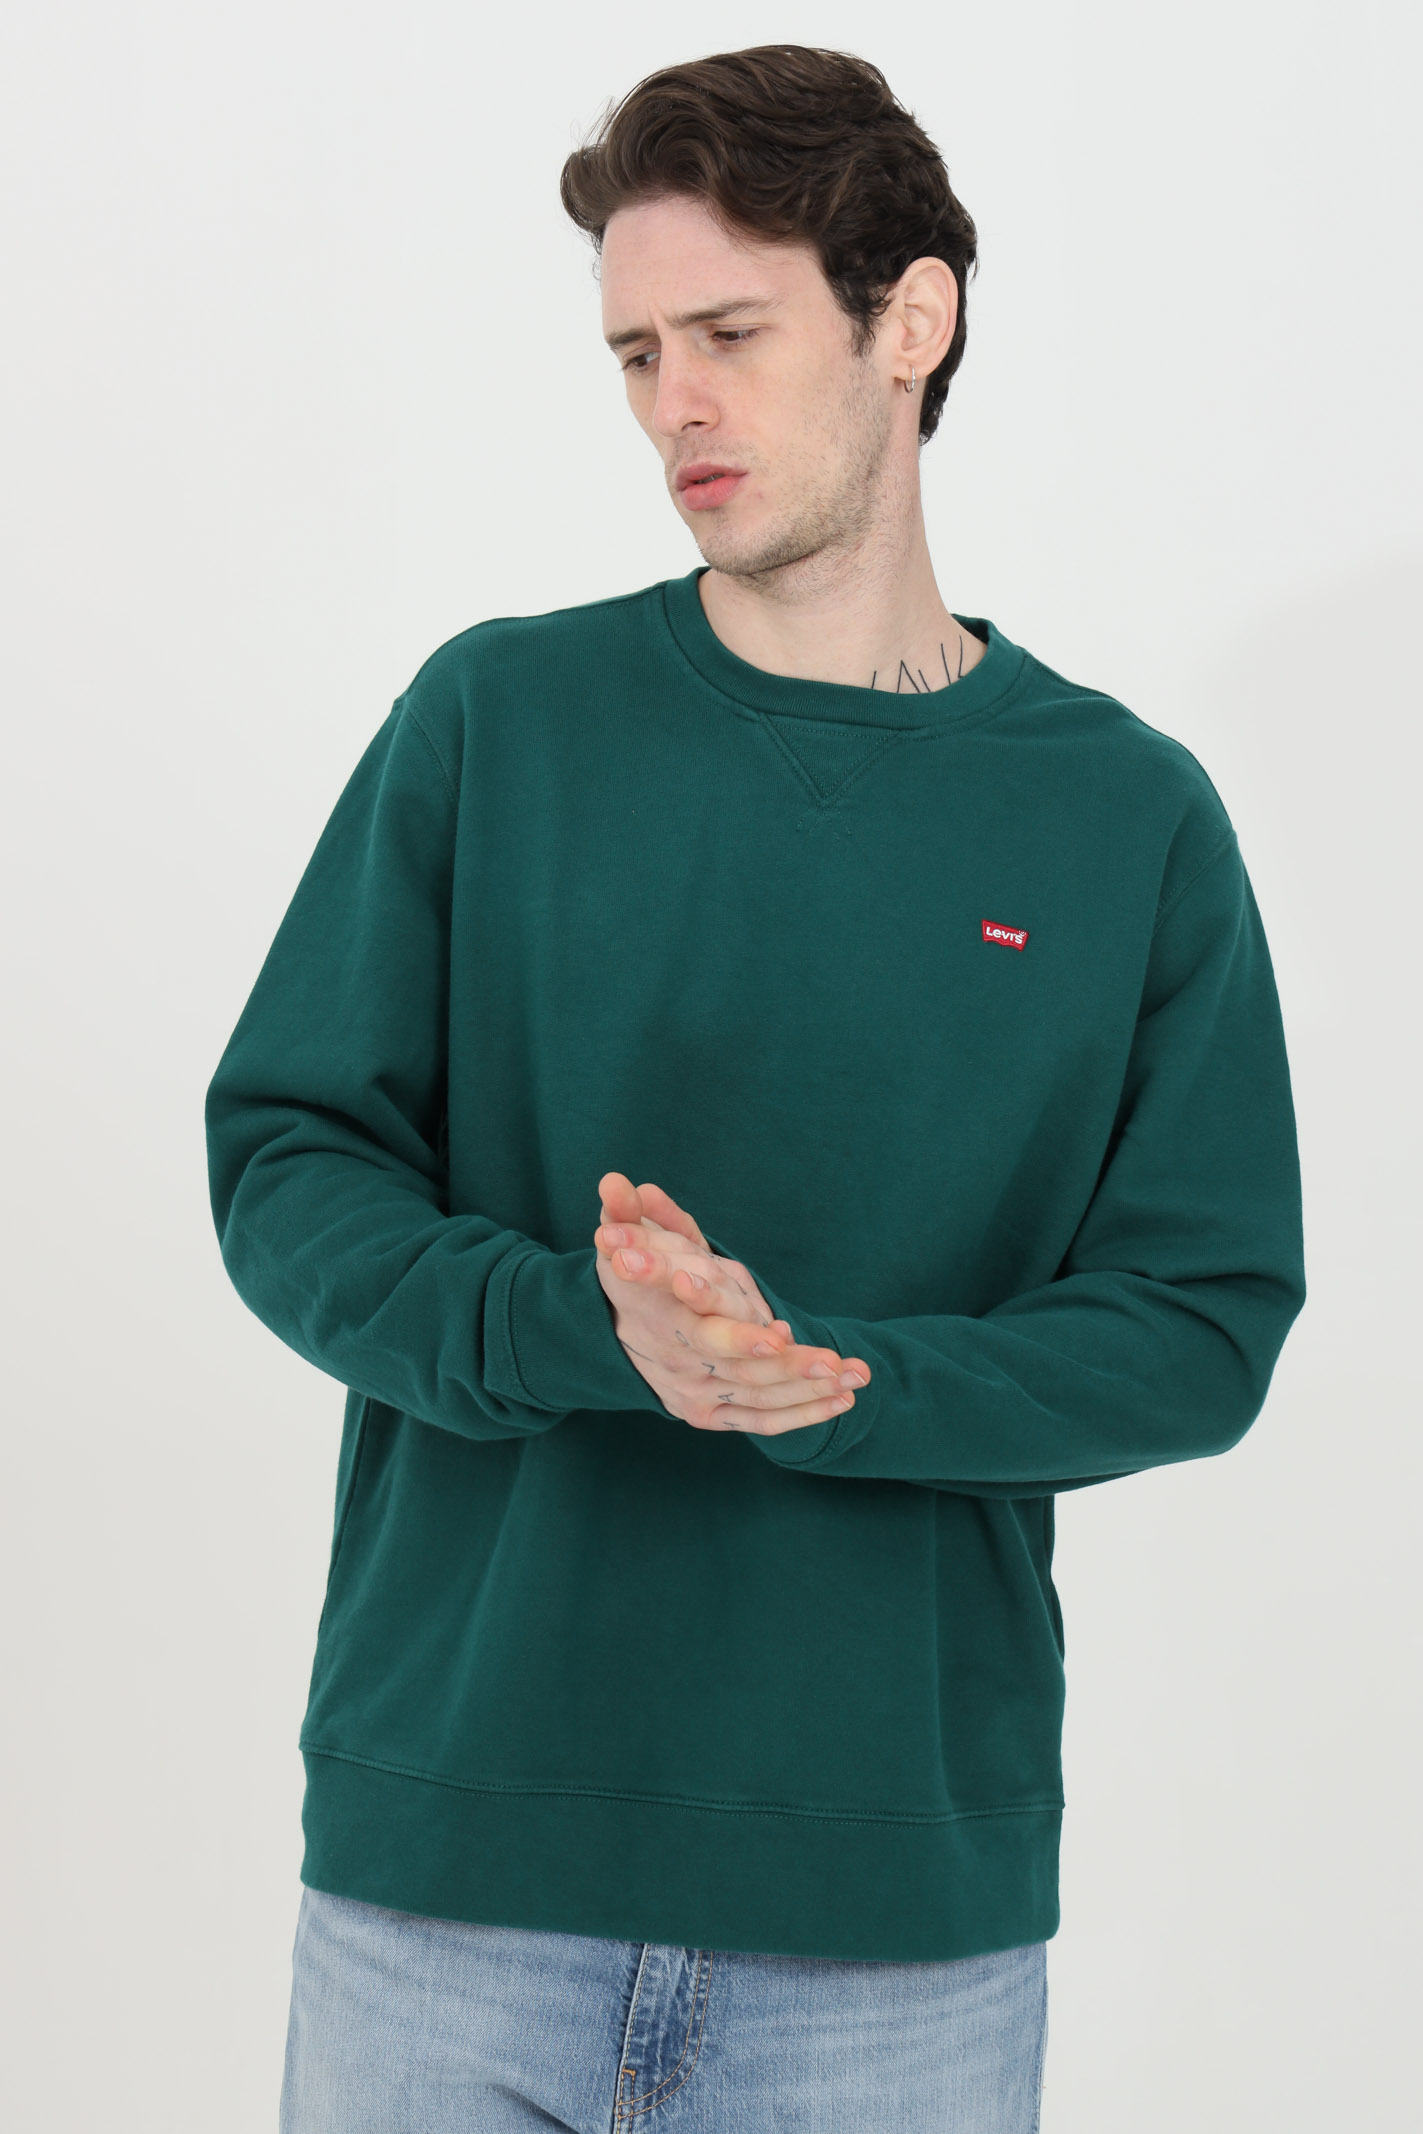 Green crew neck sweatshirt in solid color with contrasting logo on the front. Over size model. Ribbed crew neck and elastic cuffs and bottom. Levi's LEVI'S | Sweatshirt | 35909-00070007